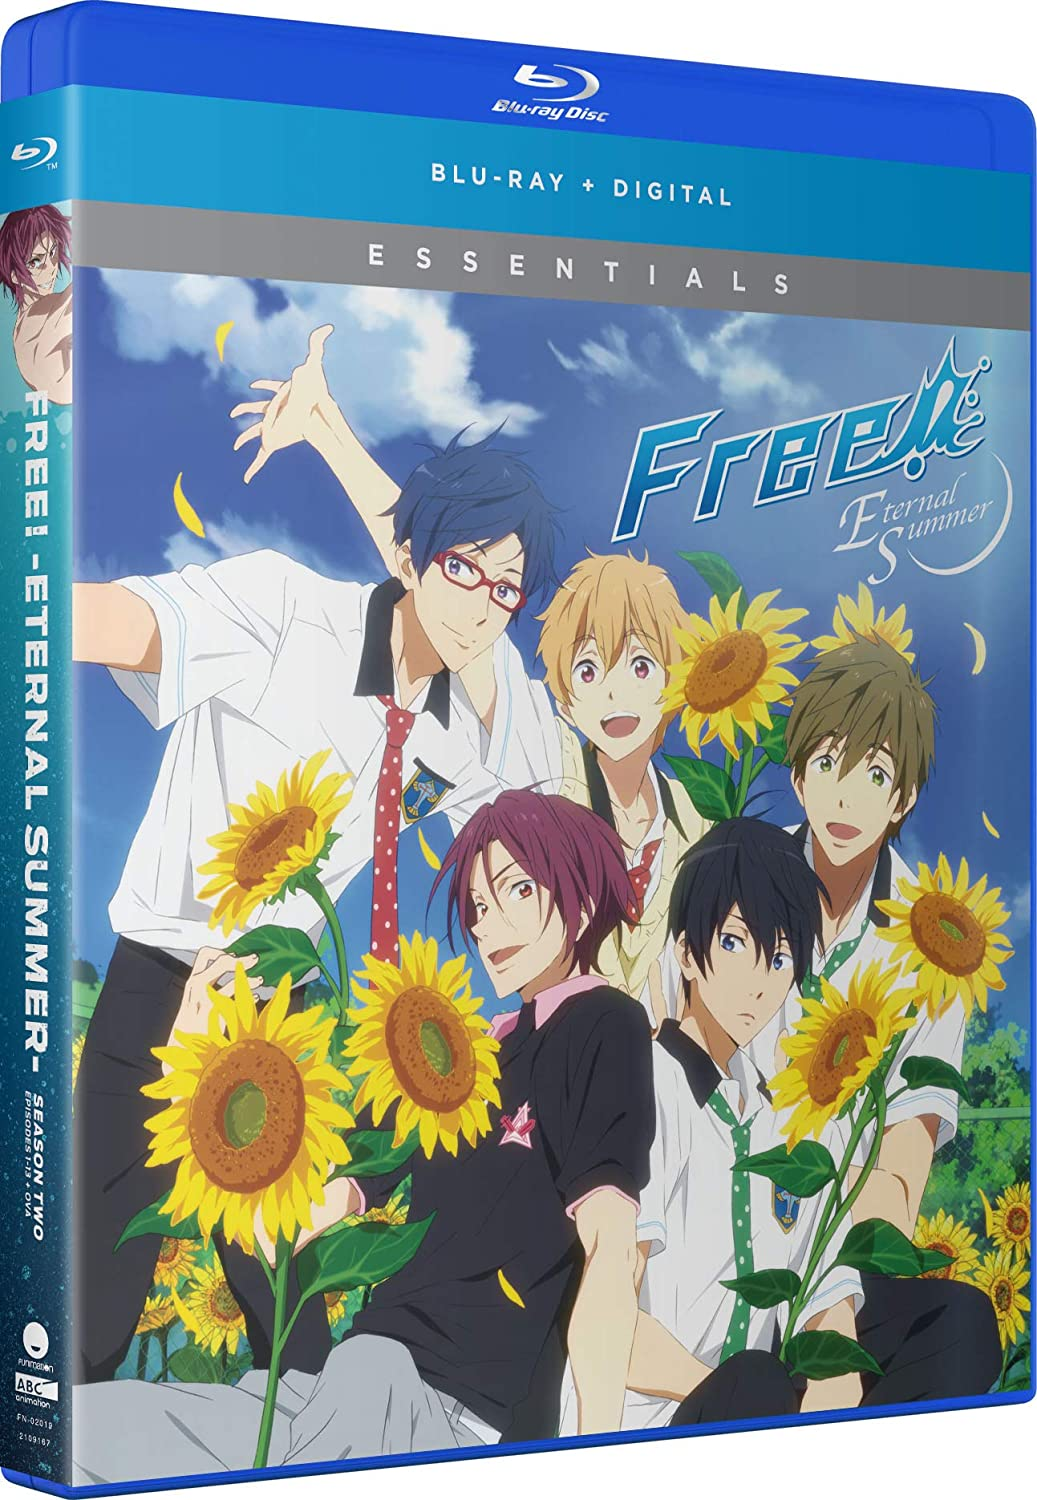 Free! Eternal Summer Season 2 Essentials Blu-ray (Dual Audio)